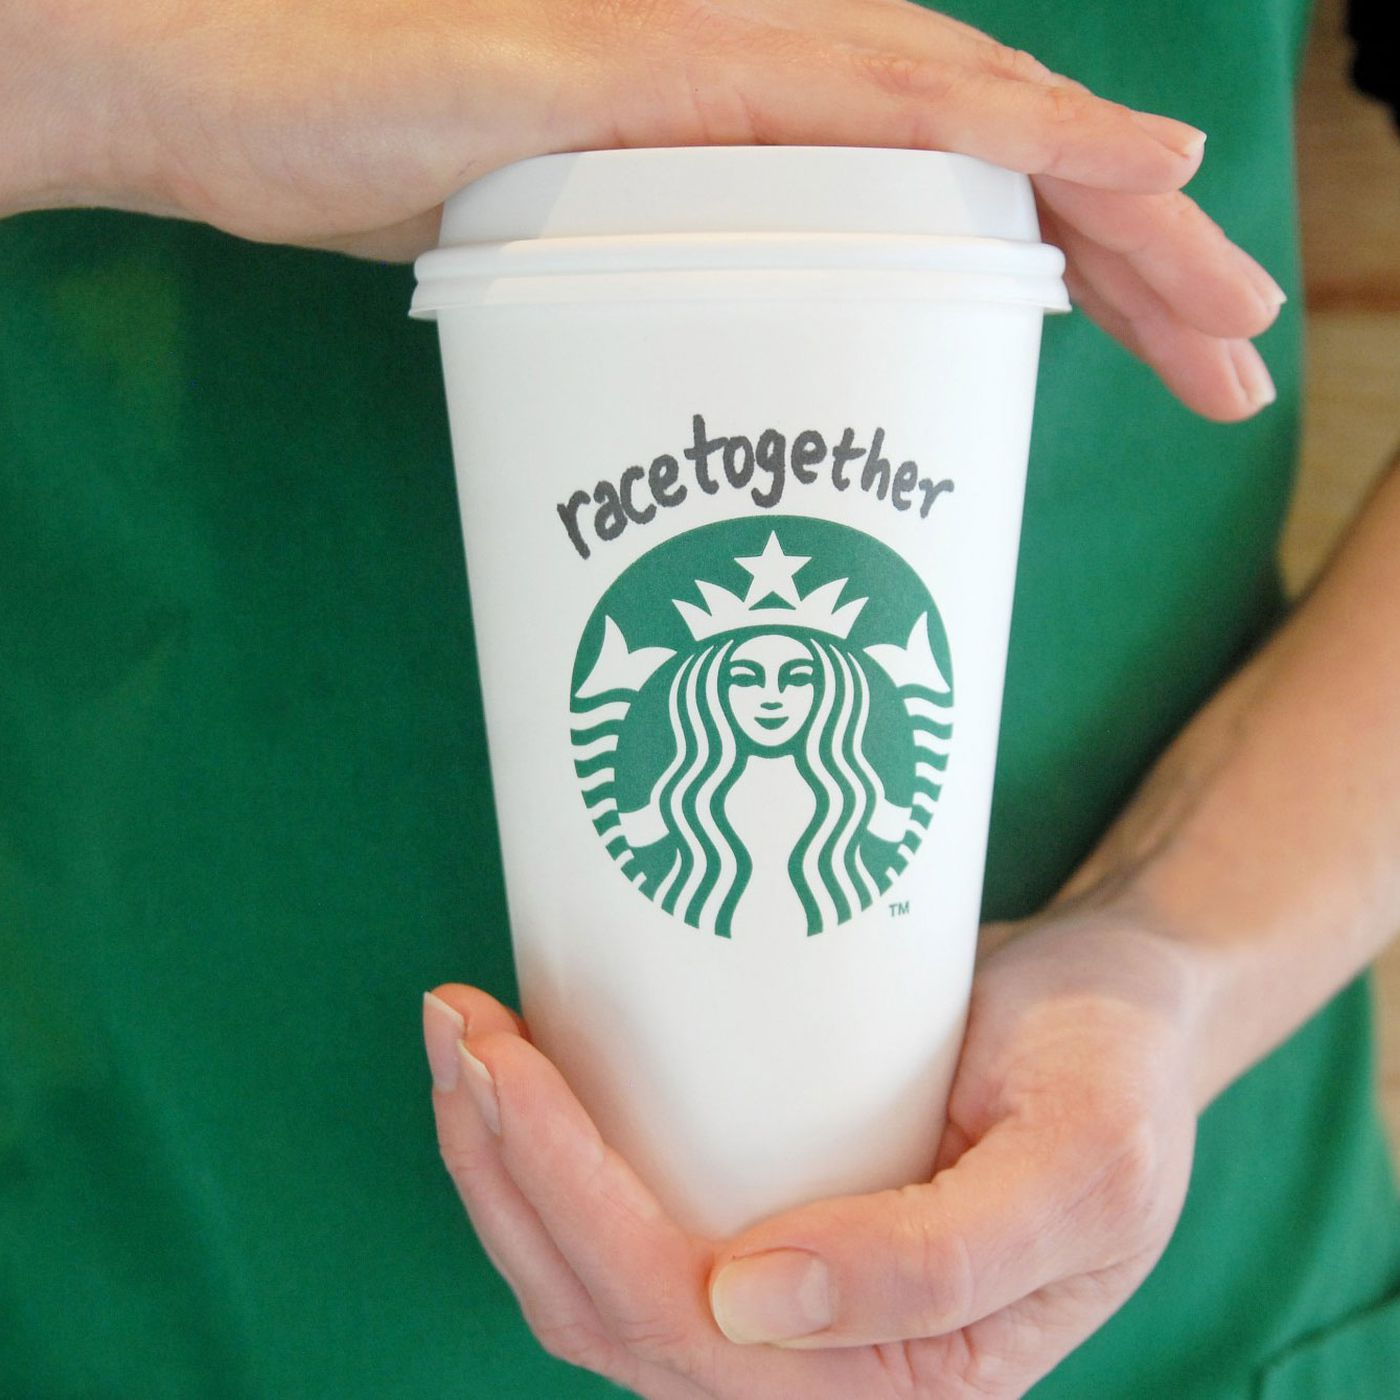 Racism Can CupEater Starbucks Fix On Message With A uFTK153lJc